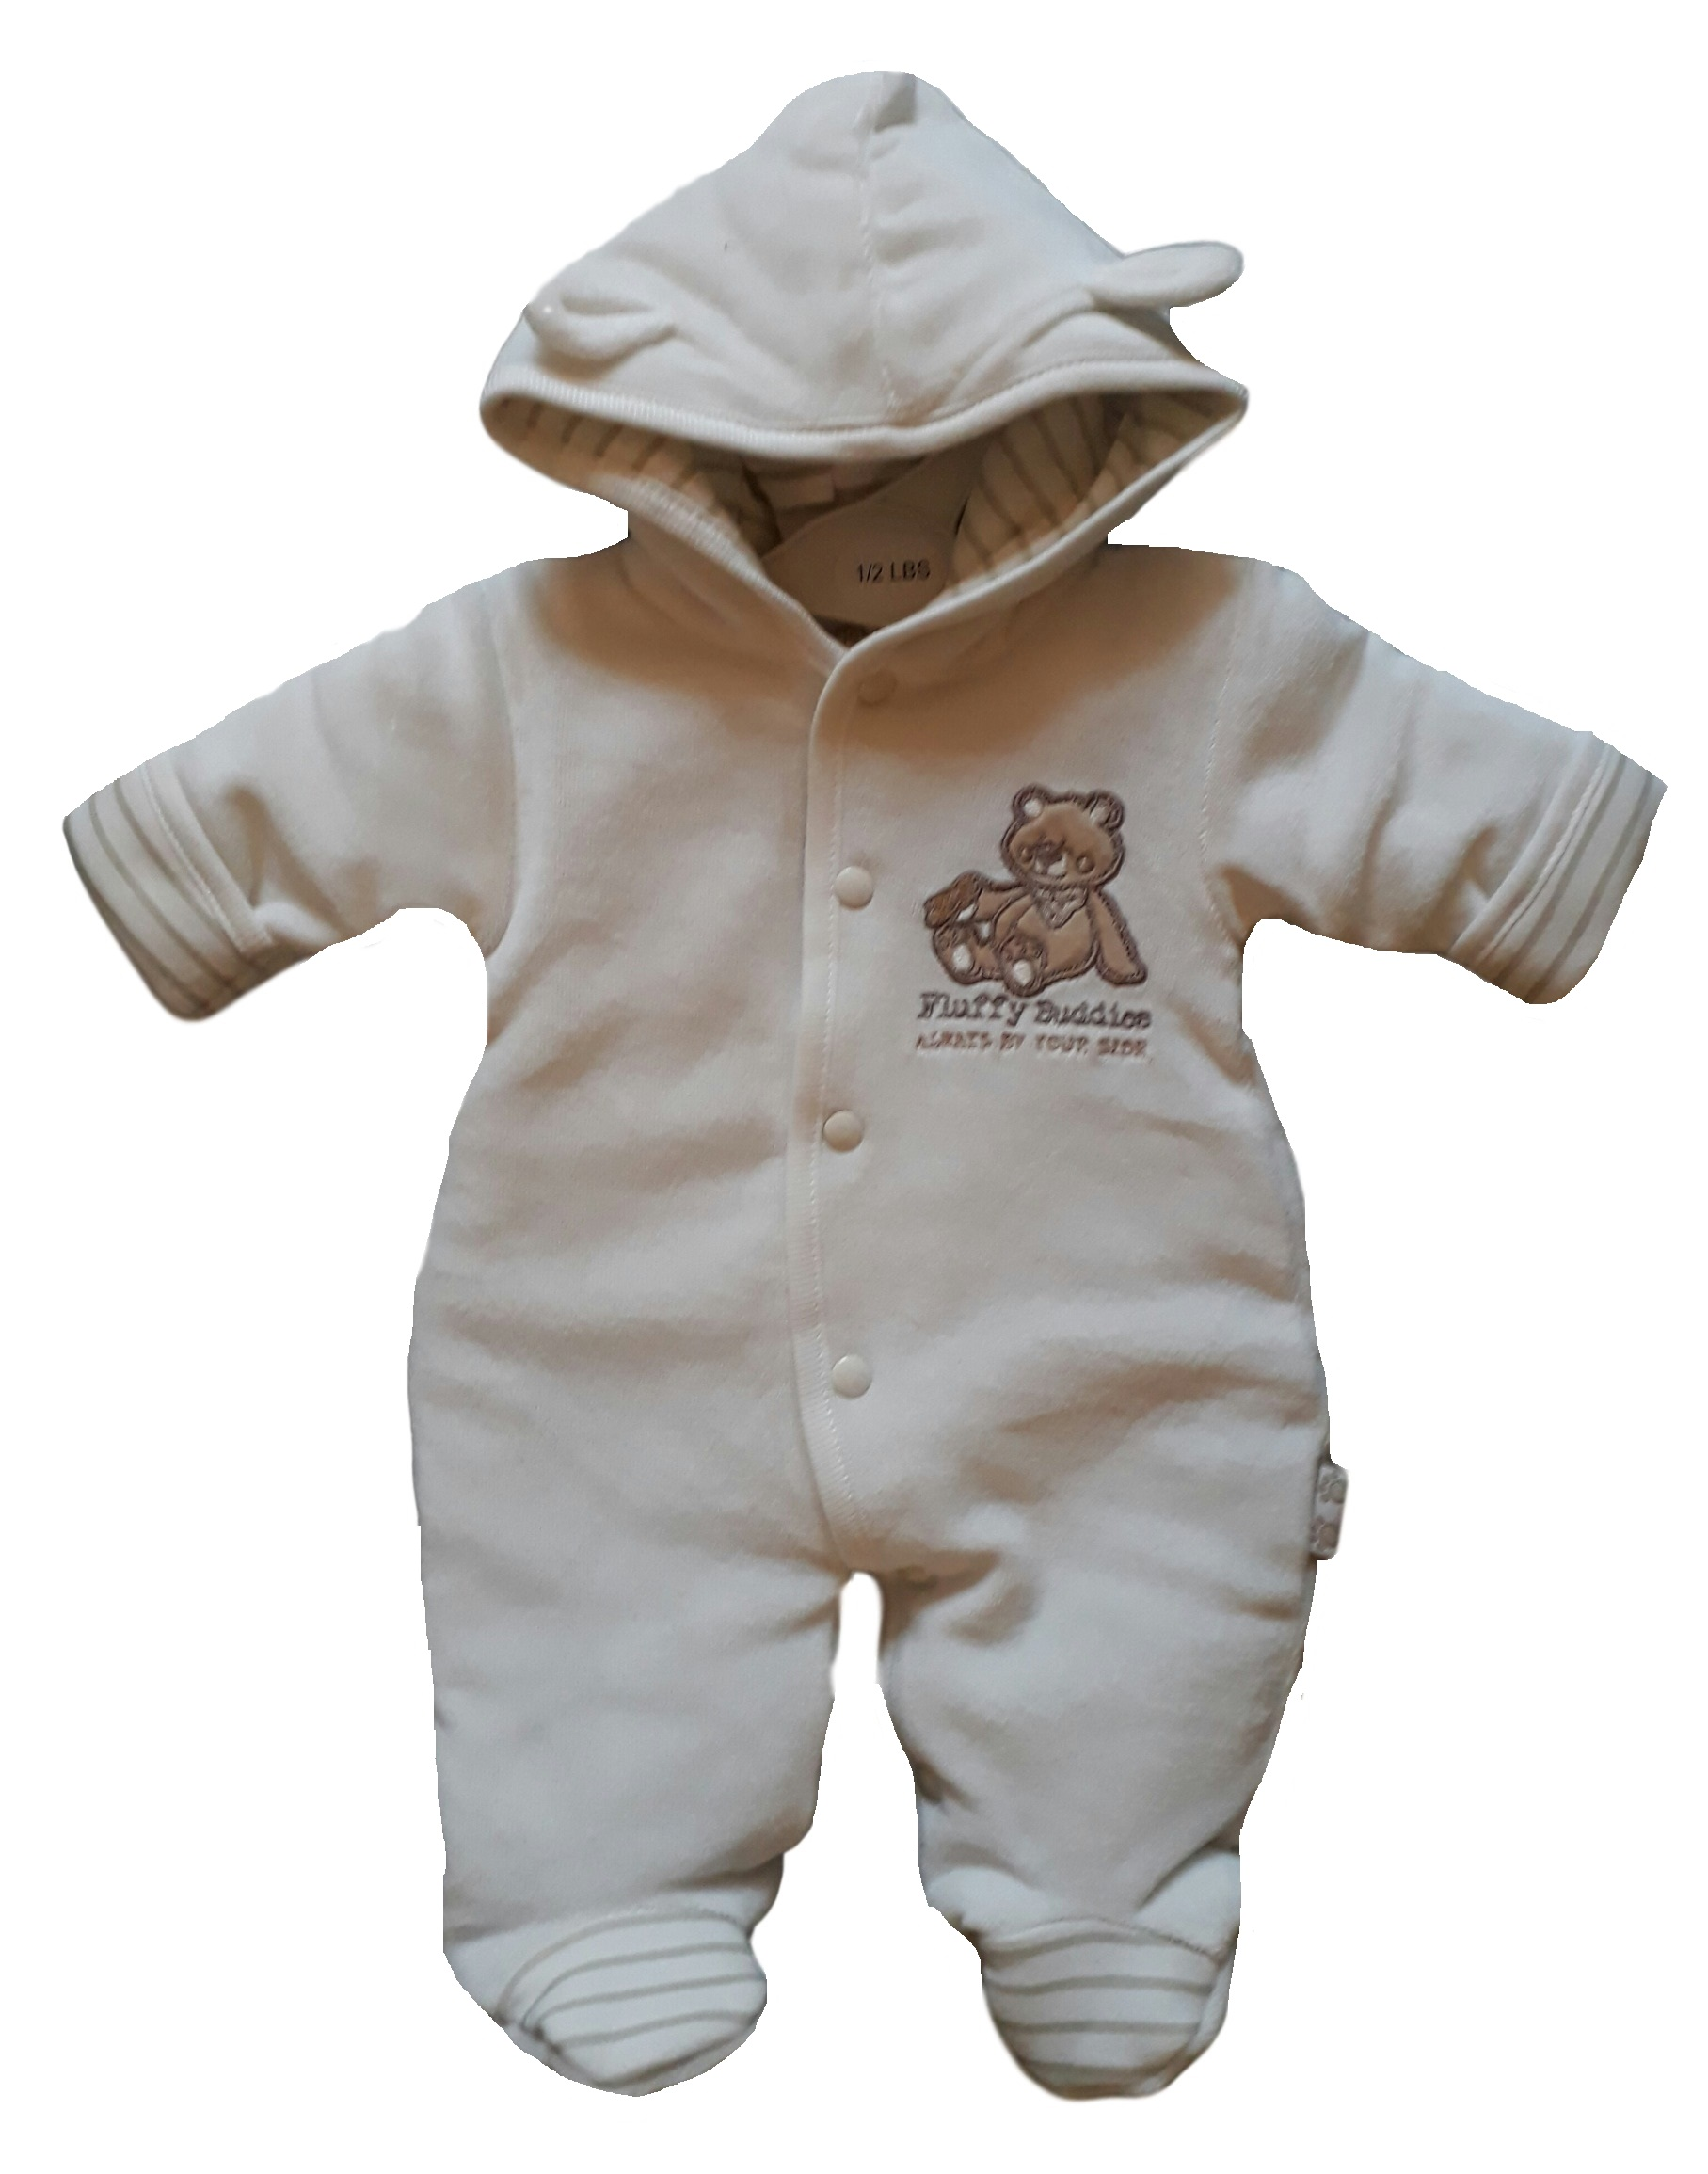 prem baby clothes padded pramsuit 5-8lb in cream velour BEST BUDDIES